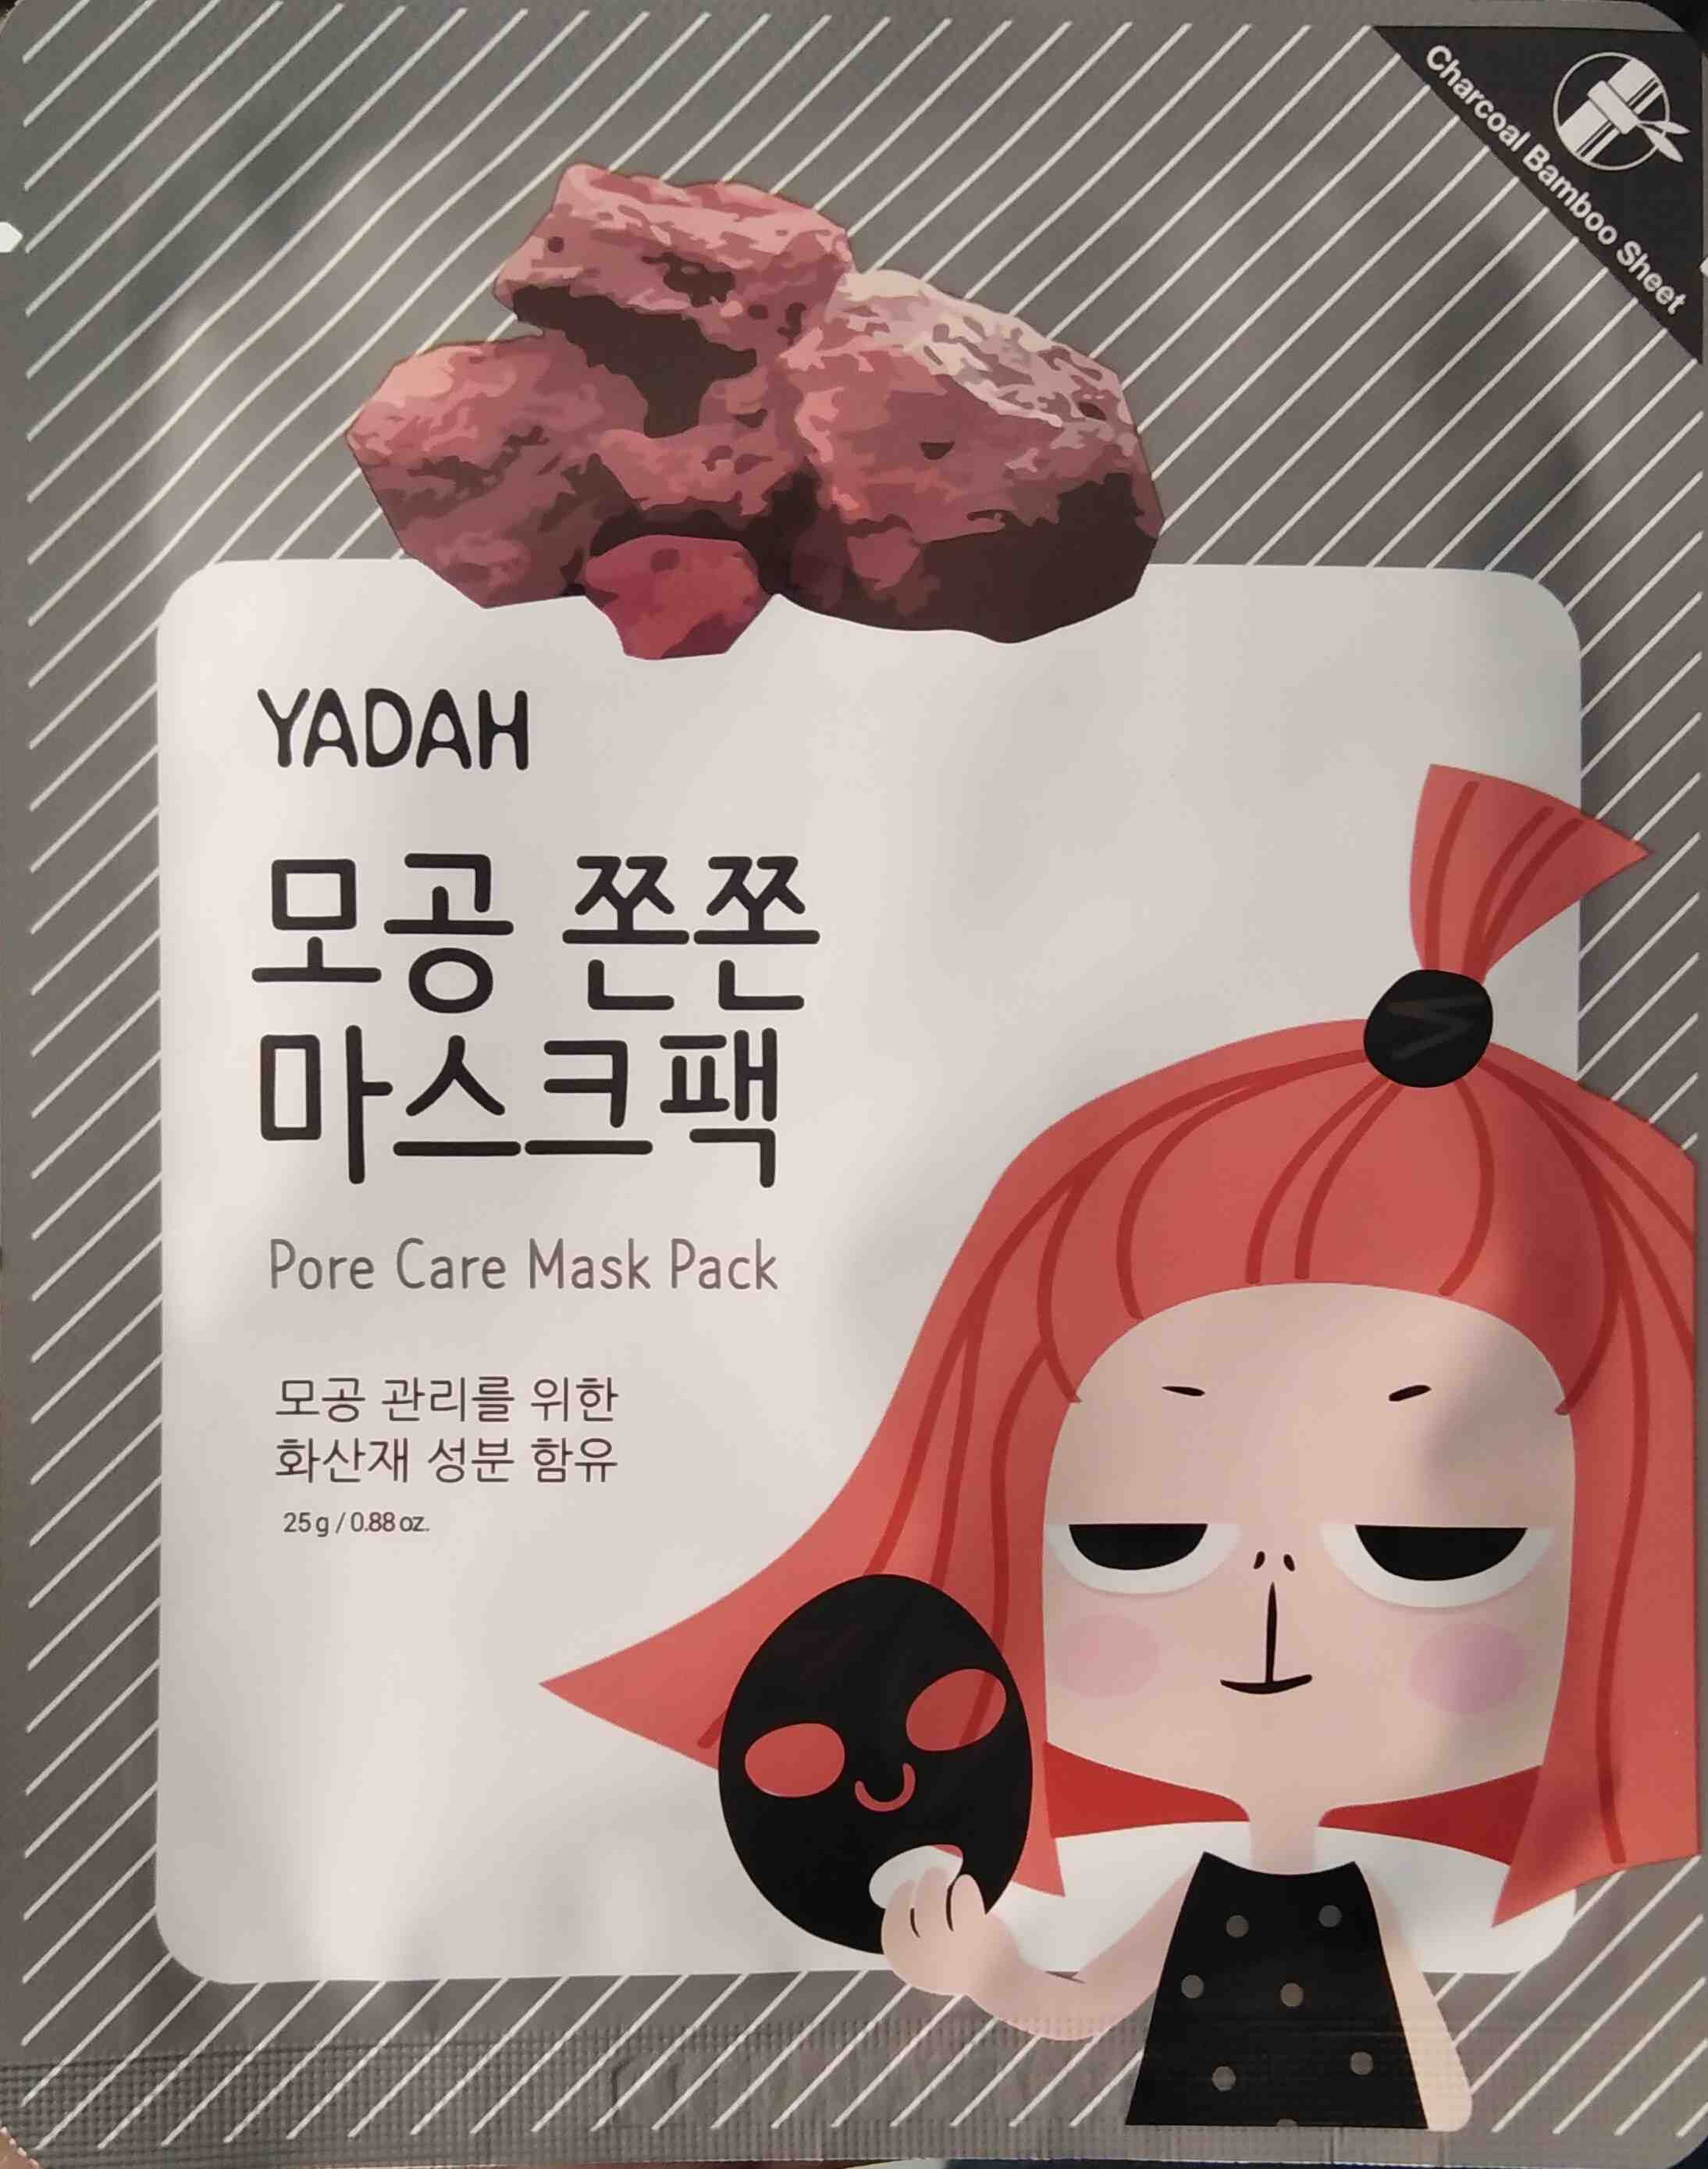 Yadah Pore Care Mask Pack - Product - en